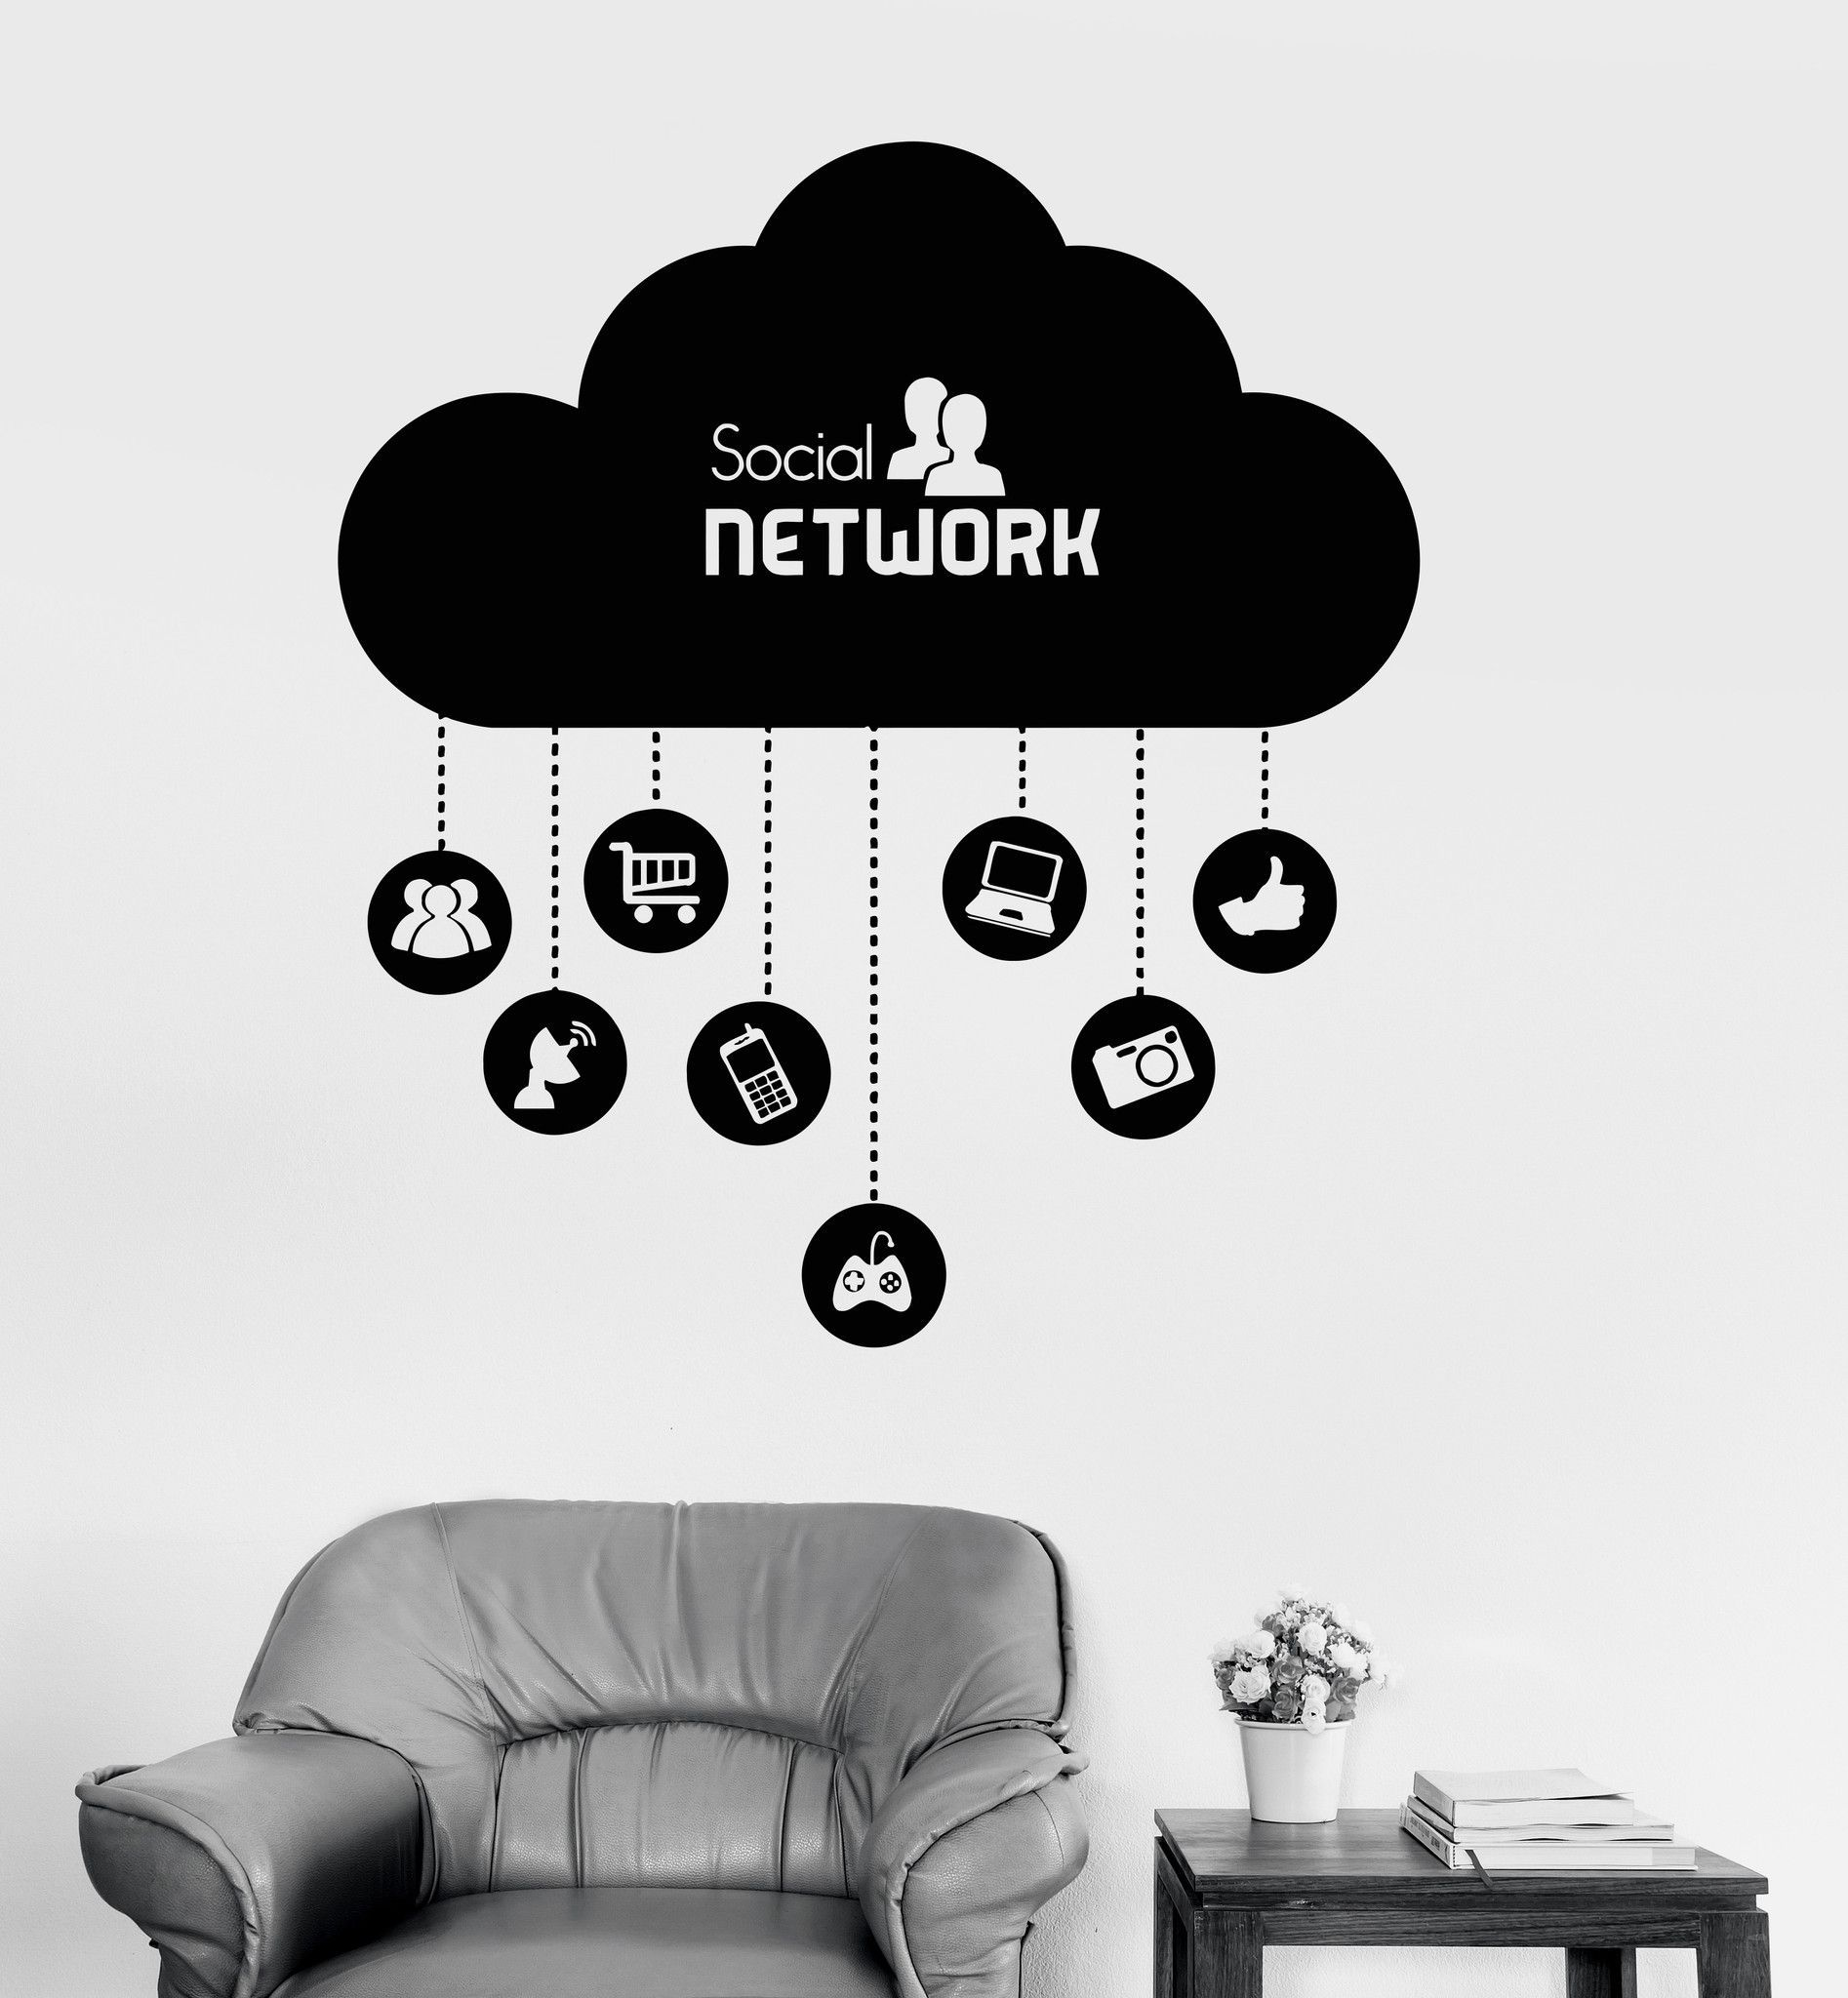 Vinyl Wall Decal Cloud Social Network Computer Technology IT - Locations where sell wall decals